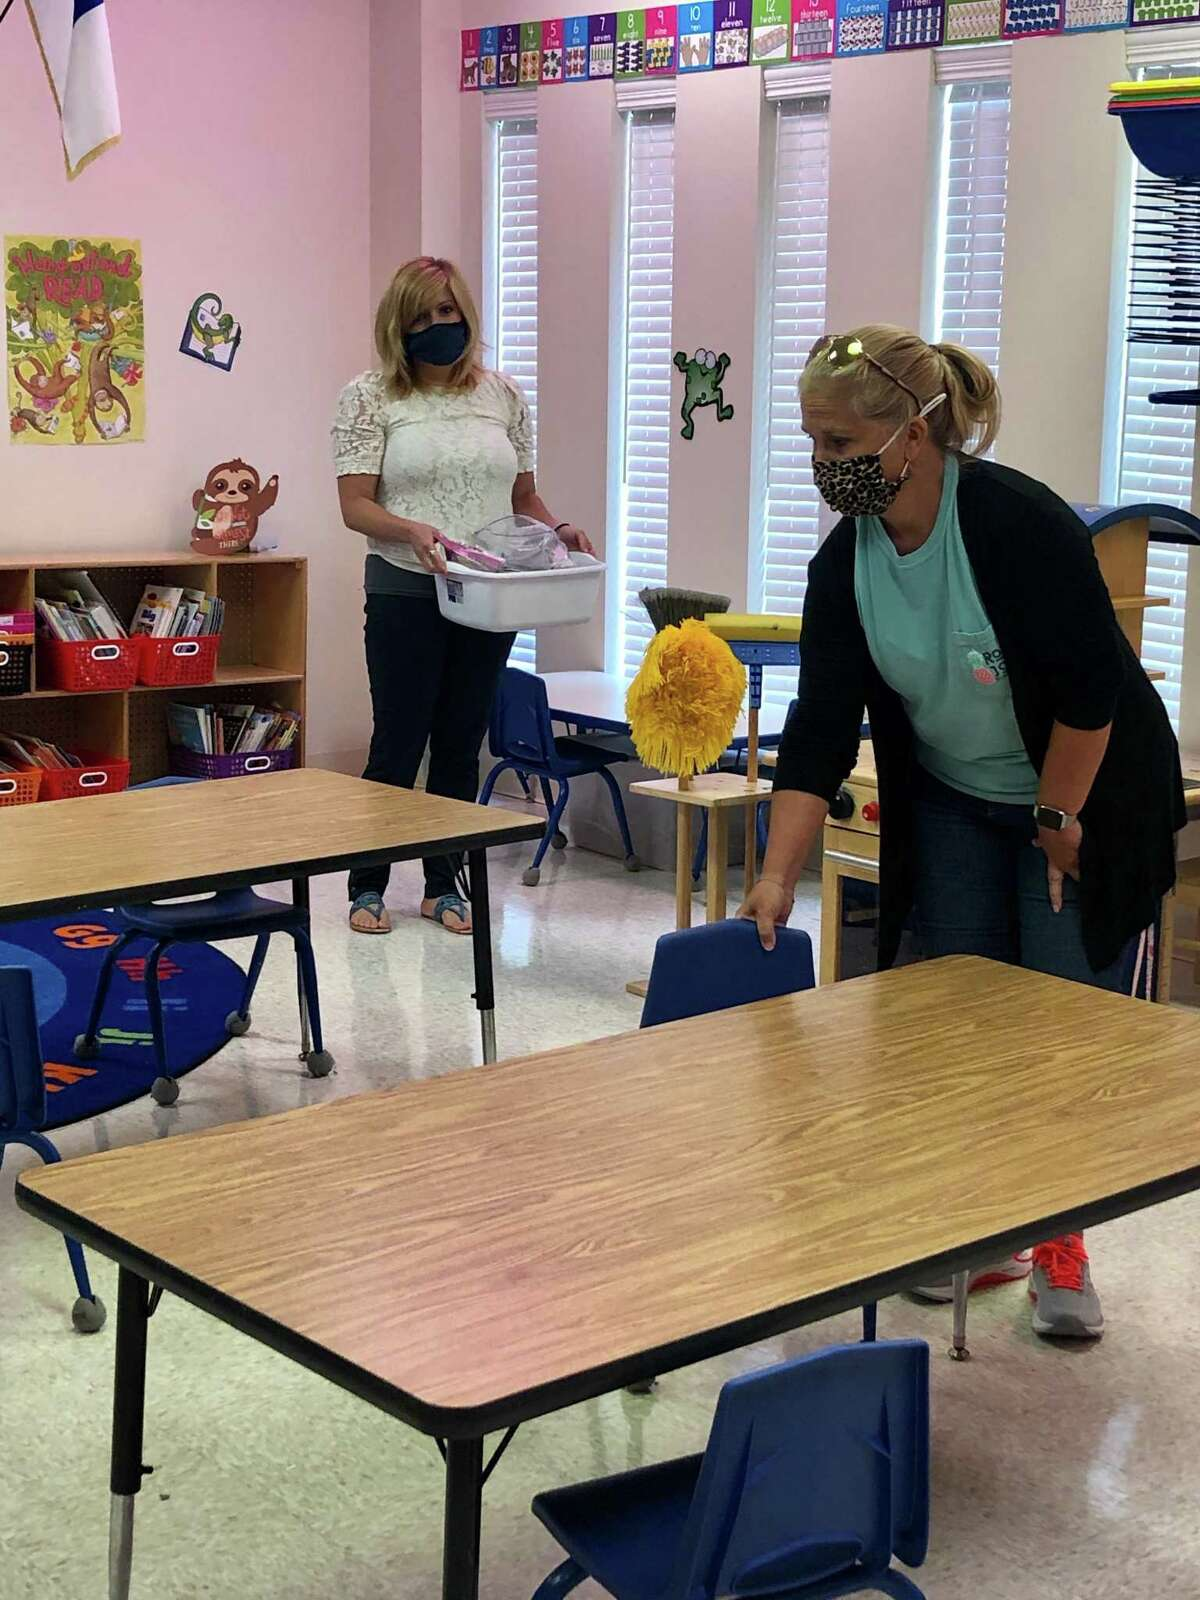 Lutheran South Academy early childhood teachers help each other prepare classrooms for students to return in-person on Aug. 19.